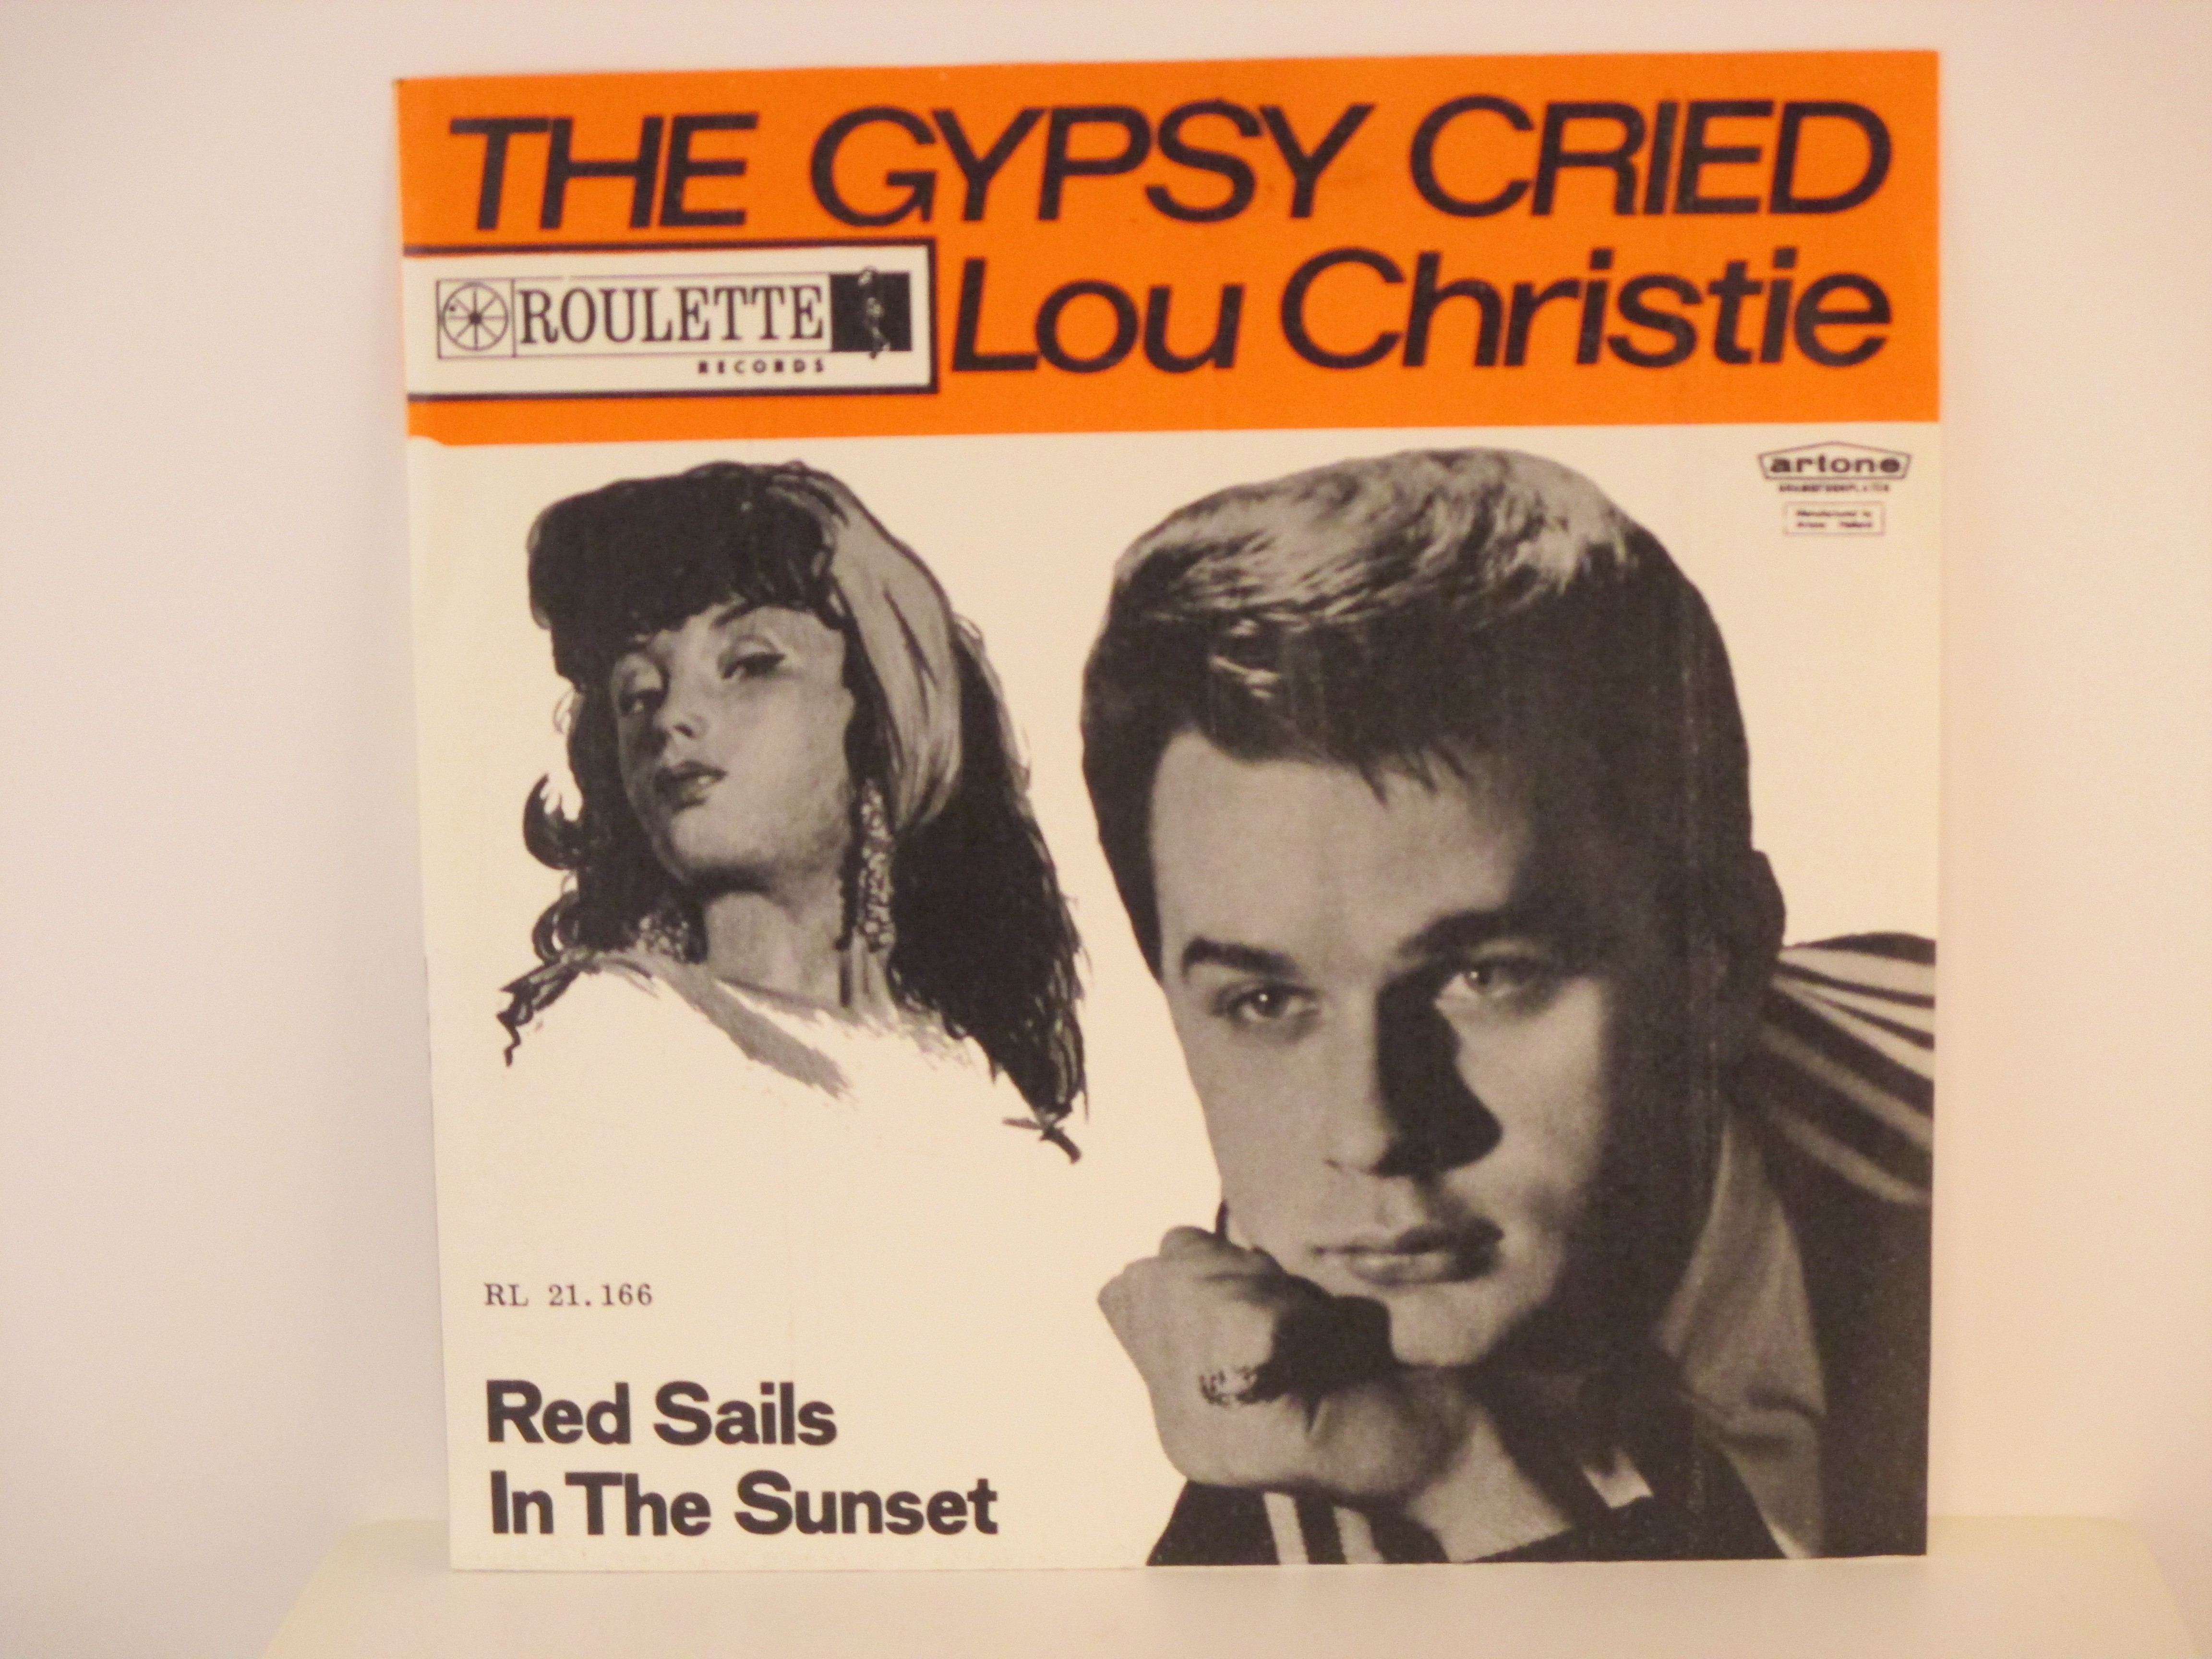 LOU CHRISTIE : The Gypsy cried / Red sails in the sunset